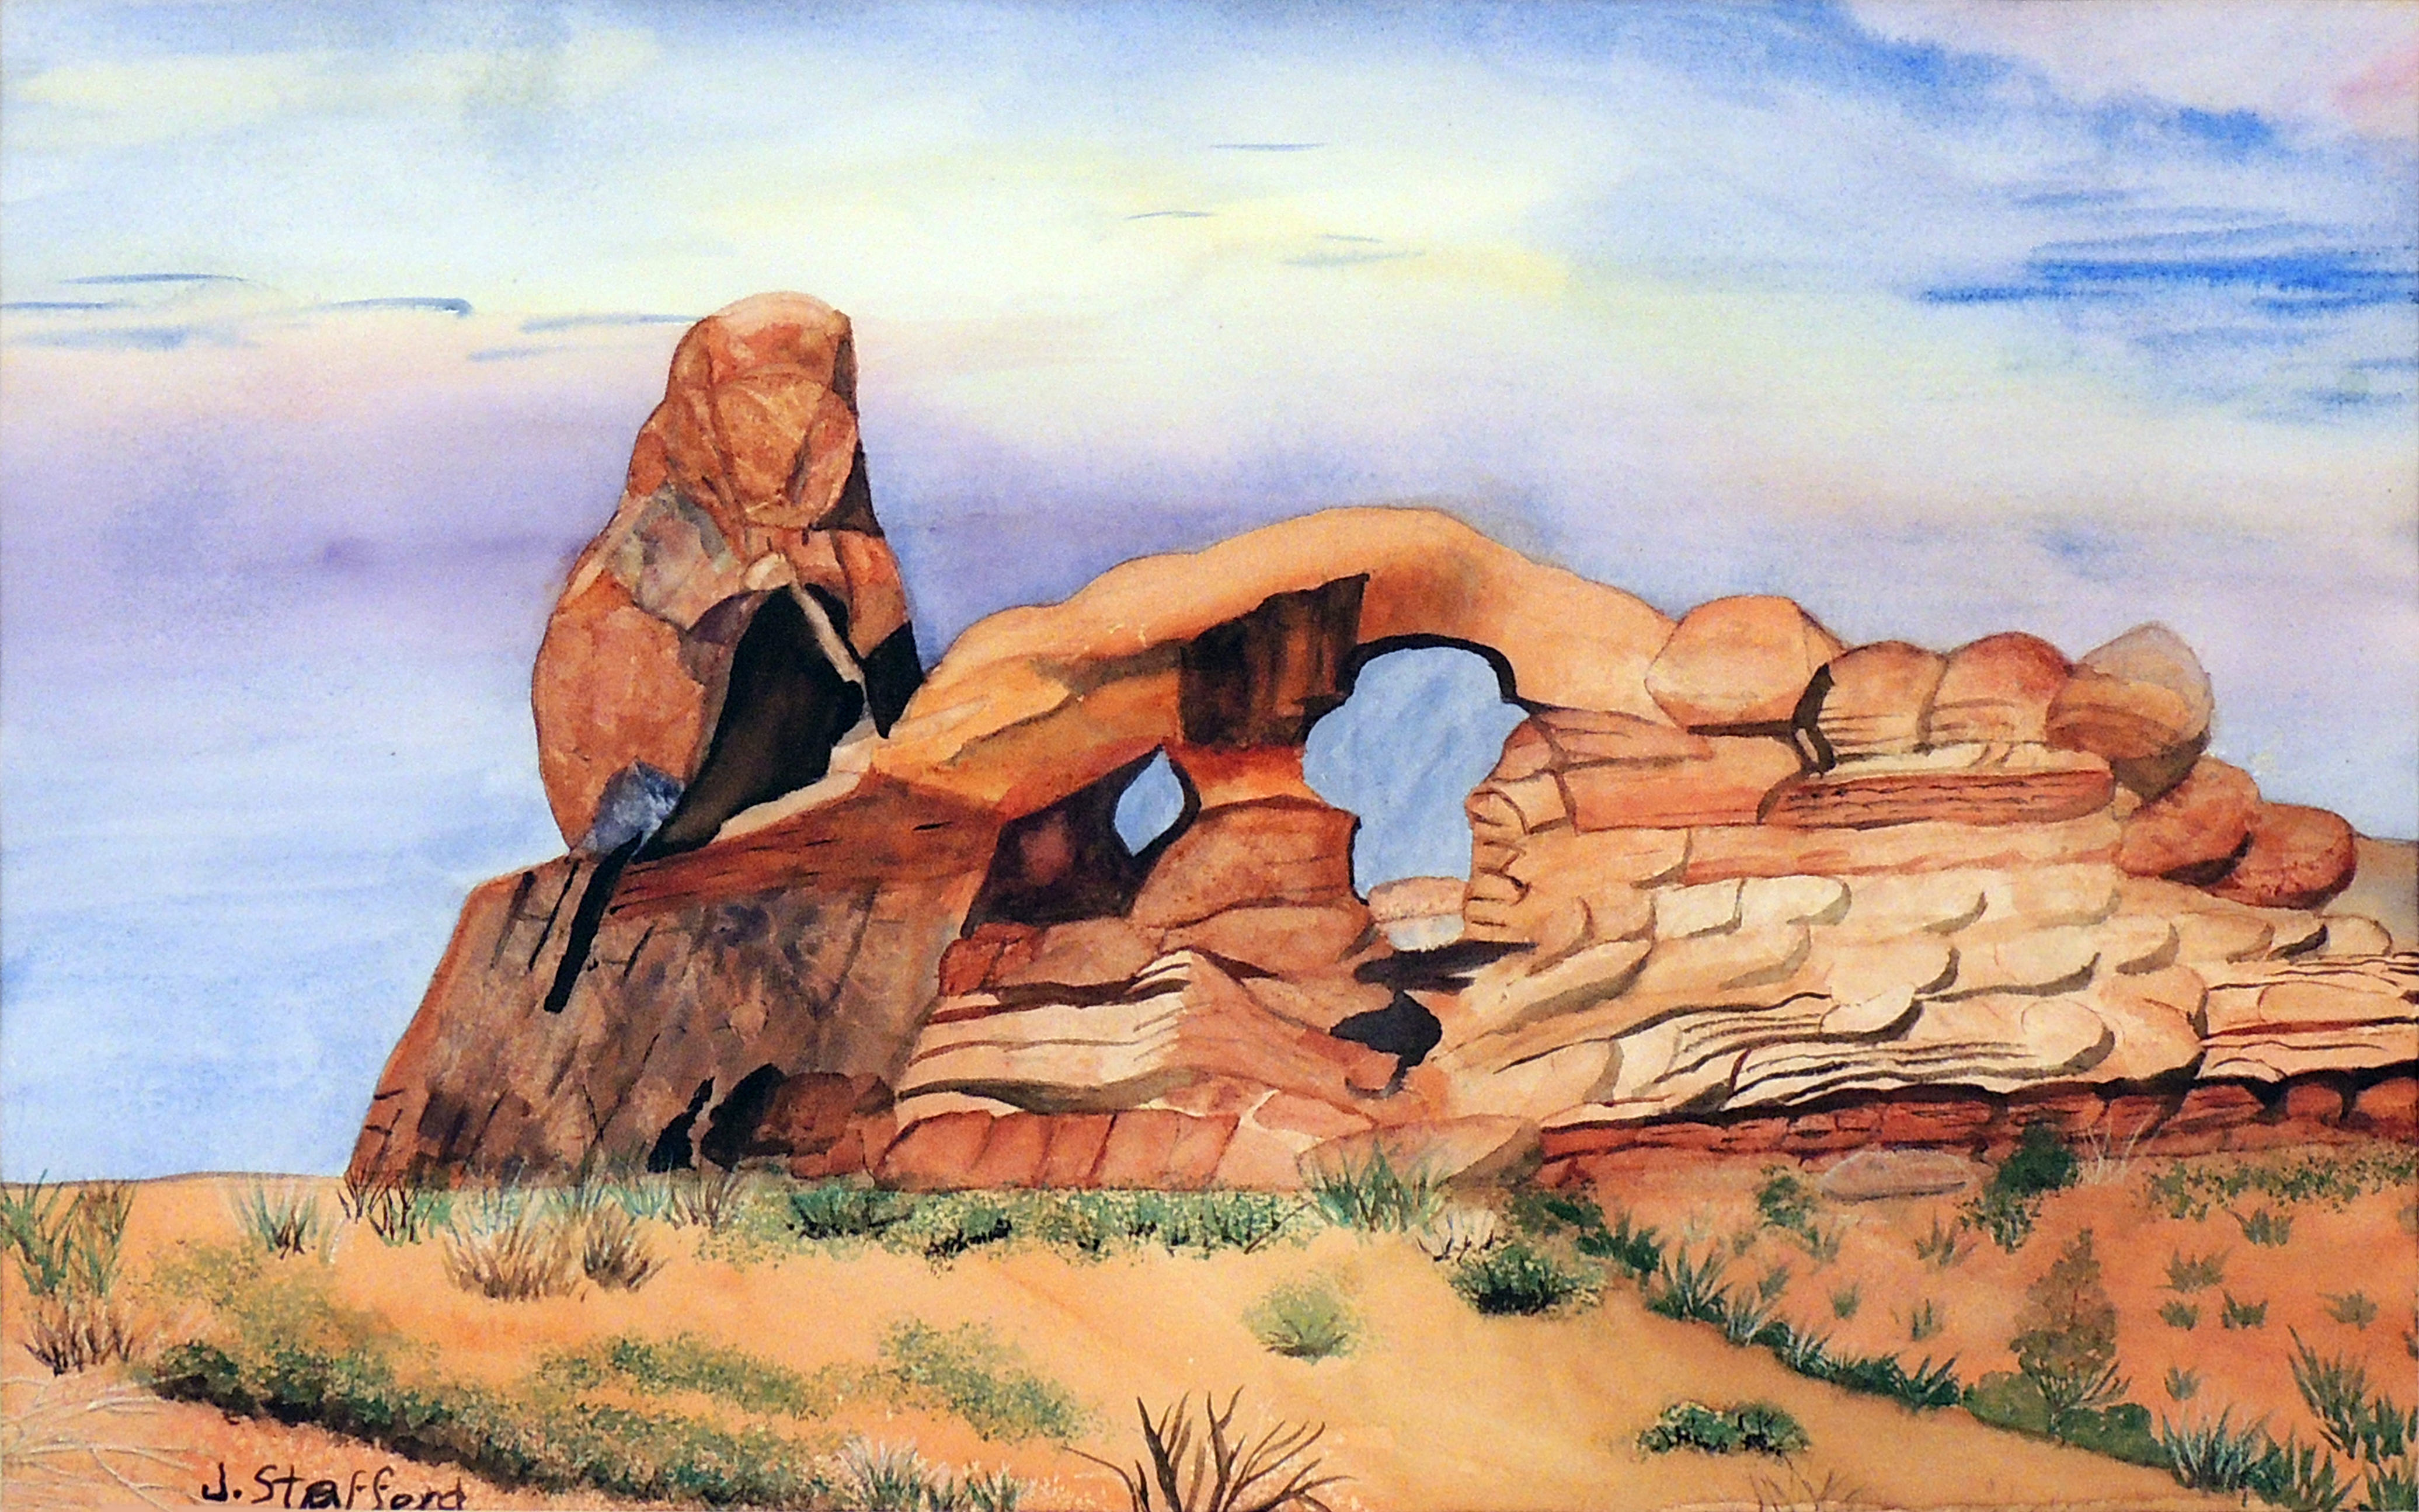 Jane Stafford | MYSTERIOUS ARCHES | Watercolor